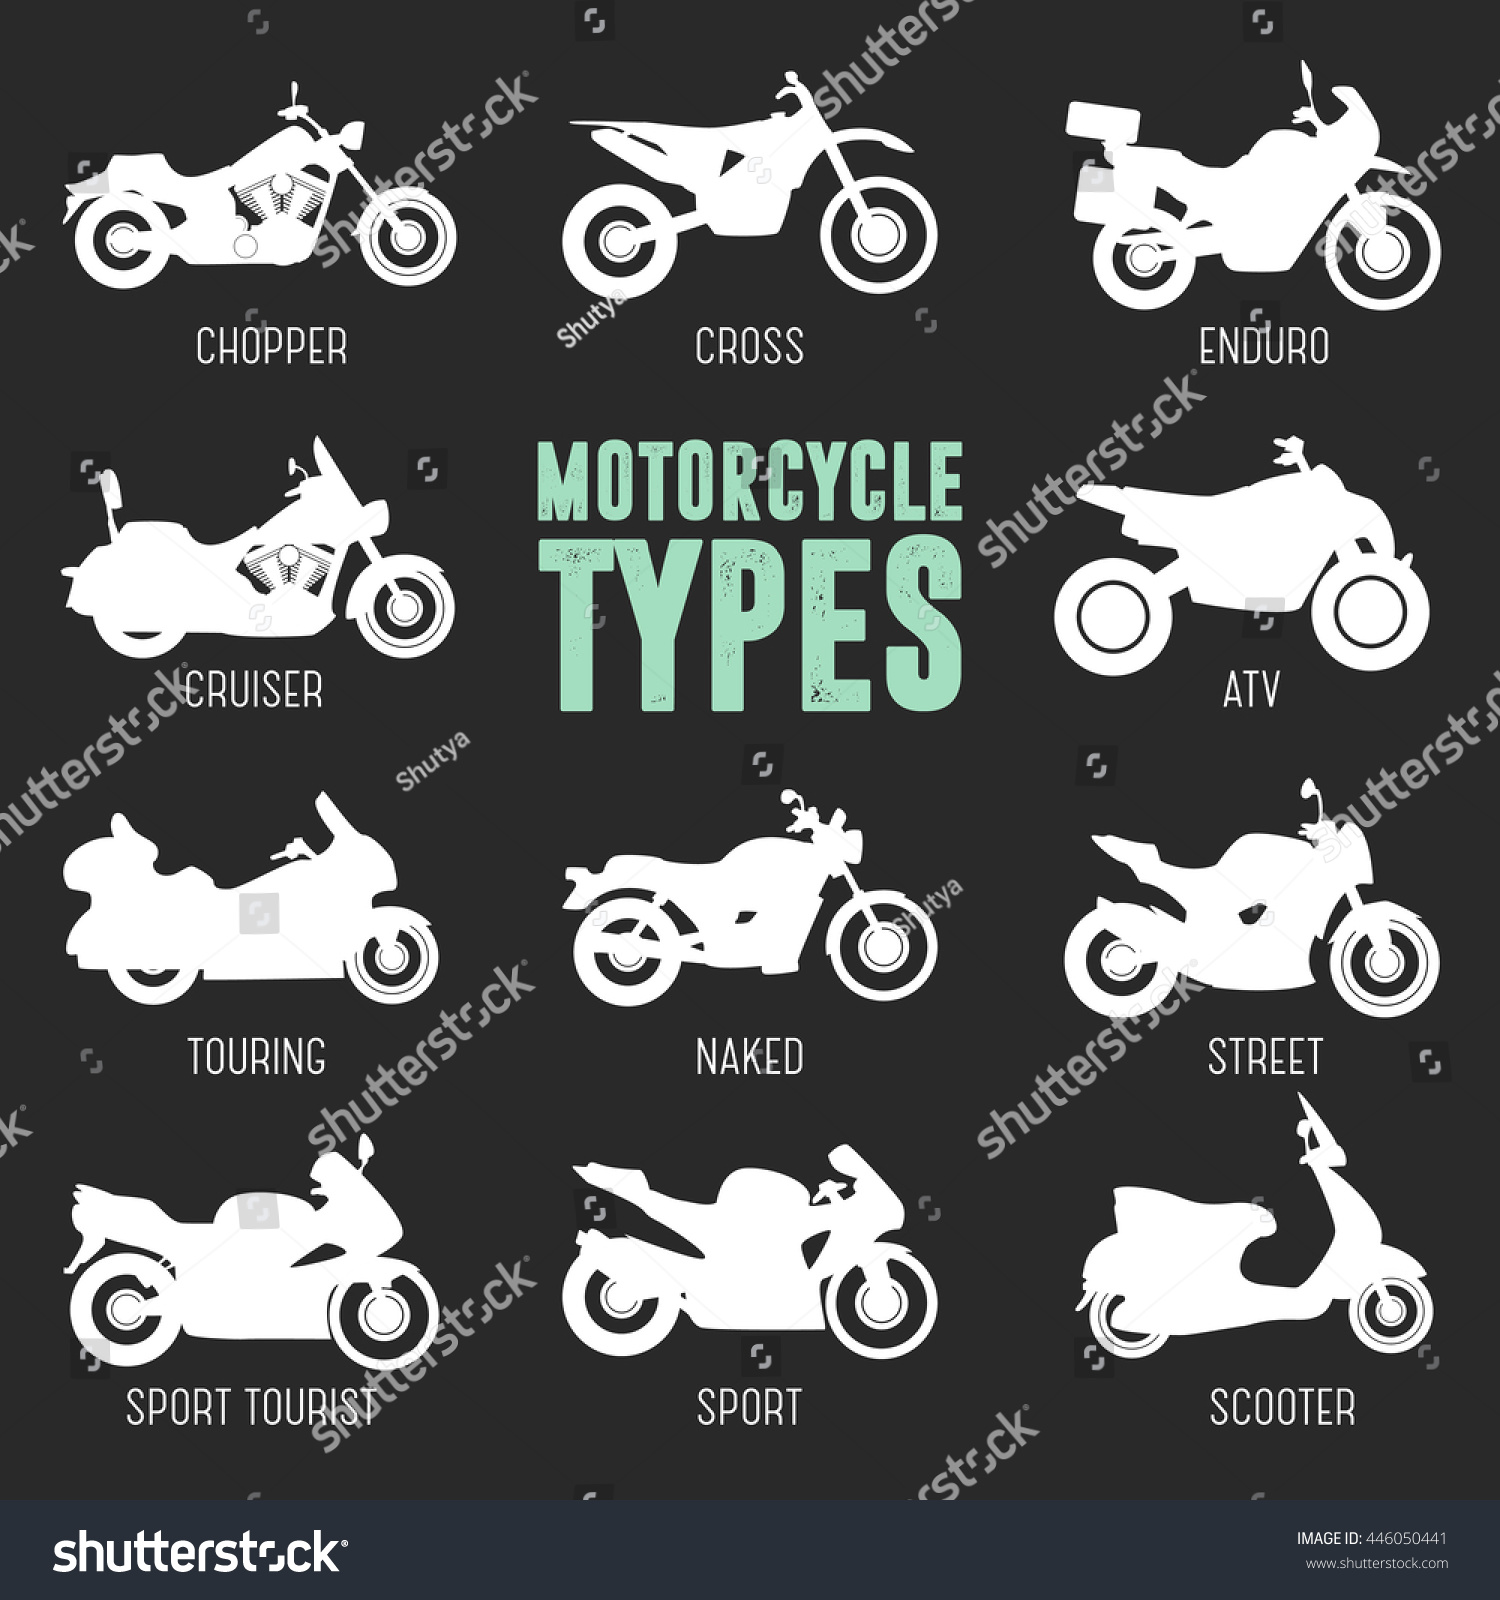 Motorcycle Model Type Objects Icons Moto Stock Vector Royalty Free